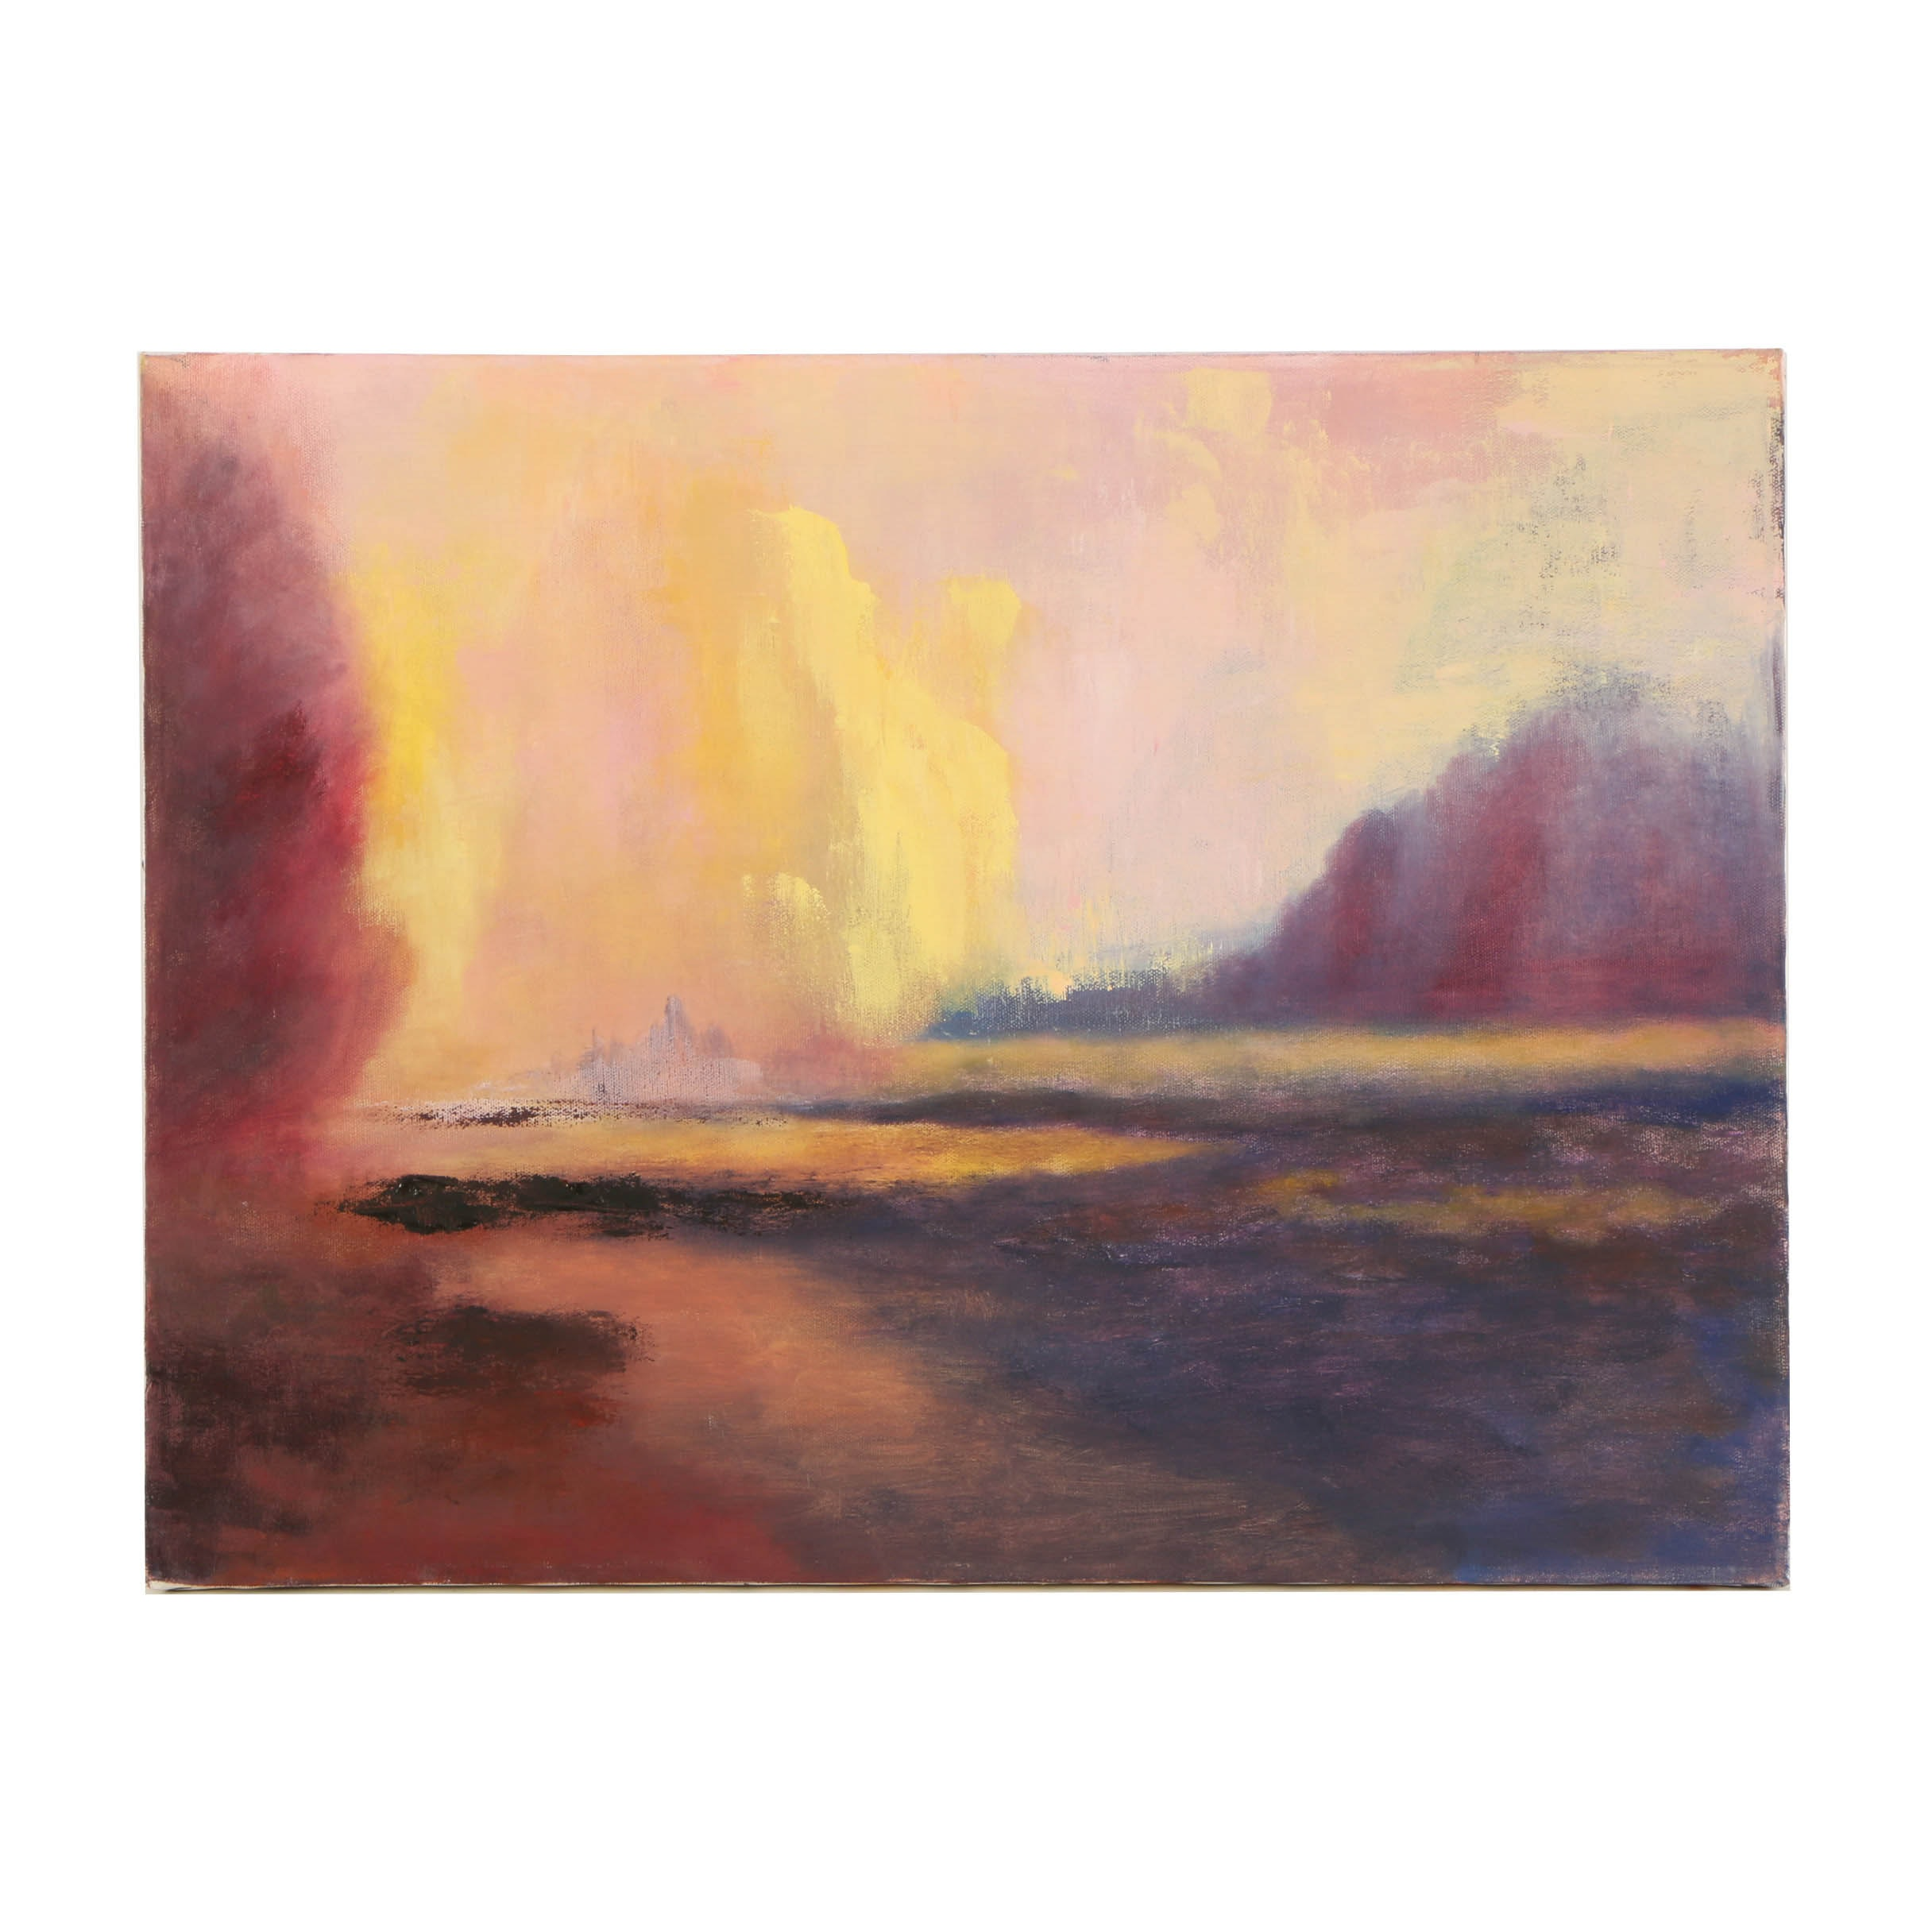 Wendy Lax Oil Painting on Canvas of an Abstract Landscape